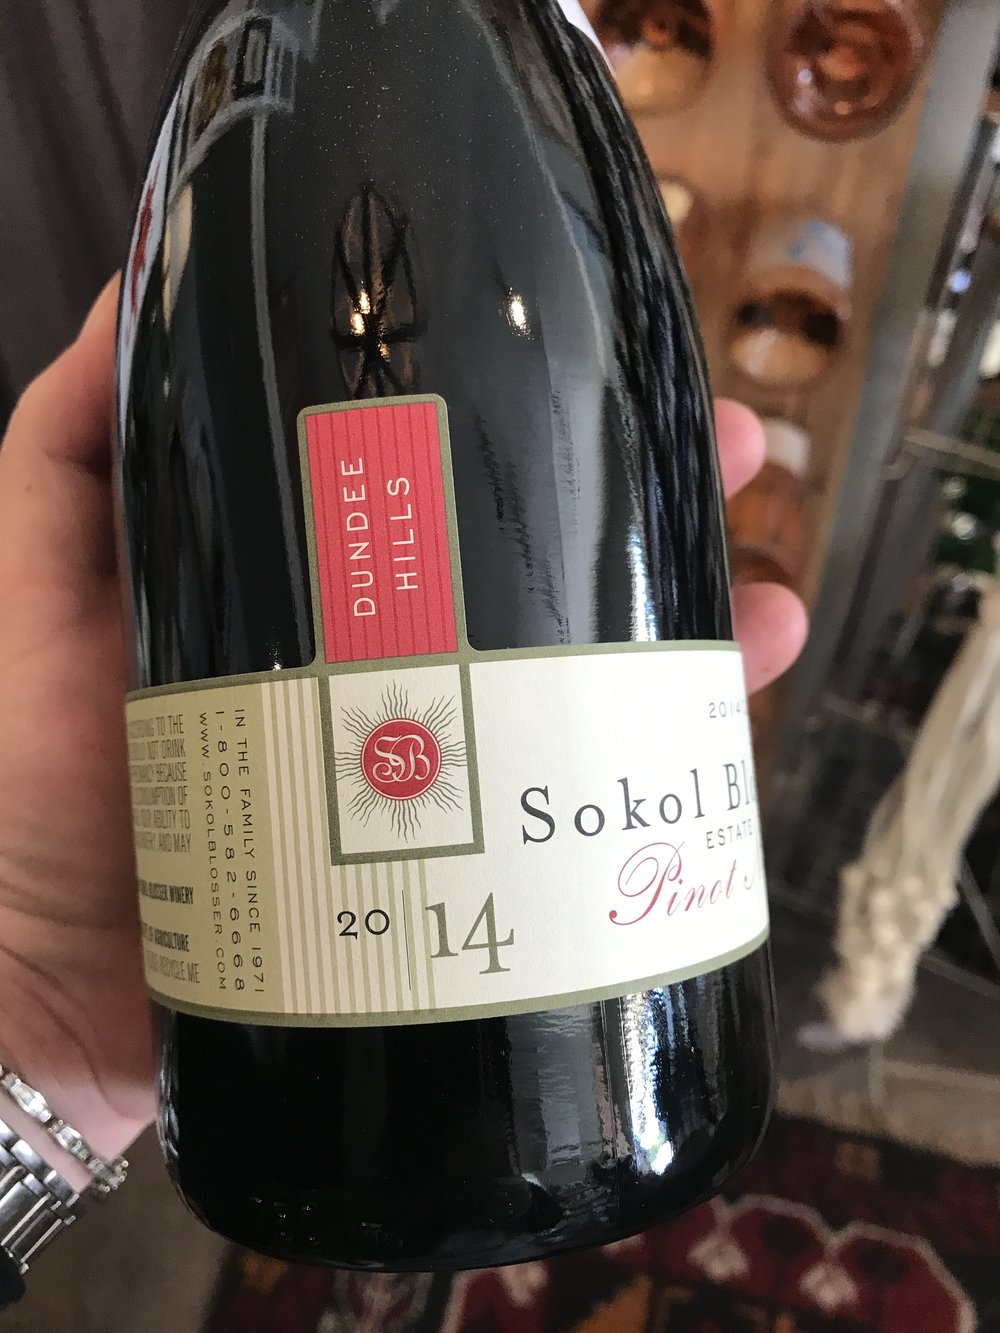 2014 Sokol Blosser, Dundee Hills: The Dundee Hills Estate Pinot Noir captures and expresses the delicate fruit characteristics associated with this varietal, and it is balanced with structure and age-ability. In order to achieve this balance Sokol Blosser combines a couple of key distinctive winemaking techniques. They increase structure and complexity in the mouth feel through a lengthy post-fermentation maceration making up about 70% of this blend. To retain the pureness of the Pinot Noir fruit characters expressed early in fermentation, the other 30% has limited skin contact by removing the wine from the skins immediately following fermentation. The entire Estate is represented in this cuvee with a percentage of each block coming together in a single blend. 92 WE/91JS/90WS  36.99